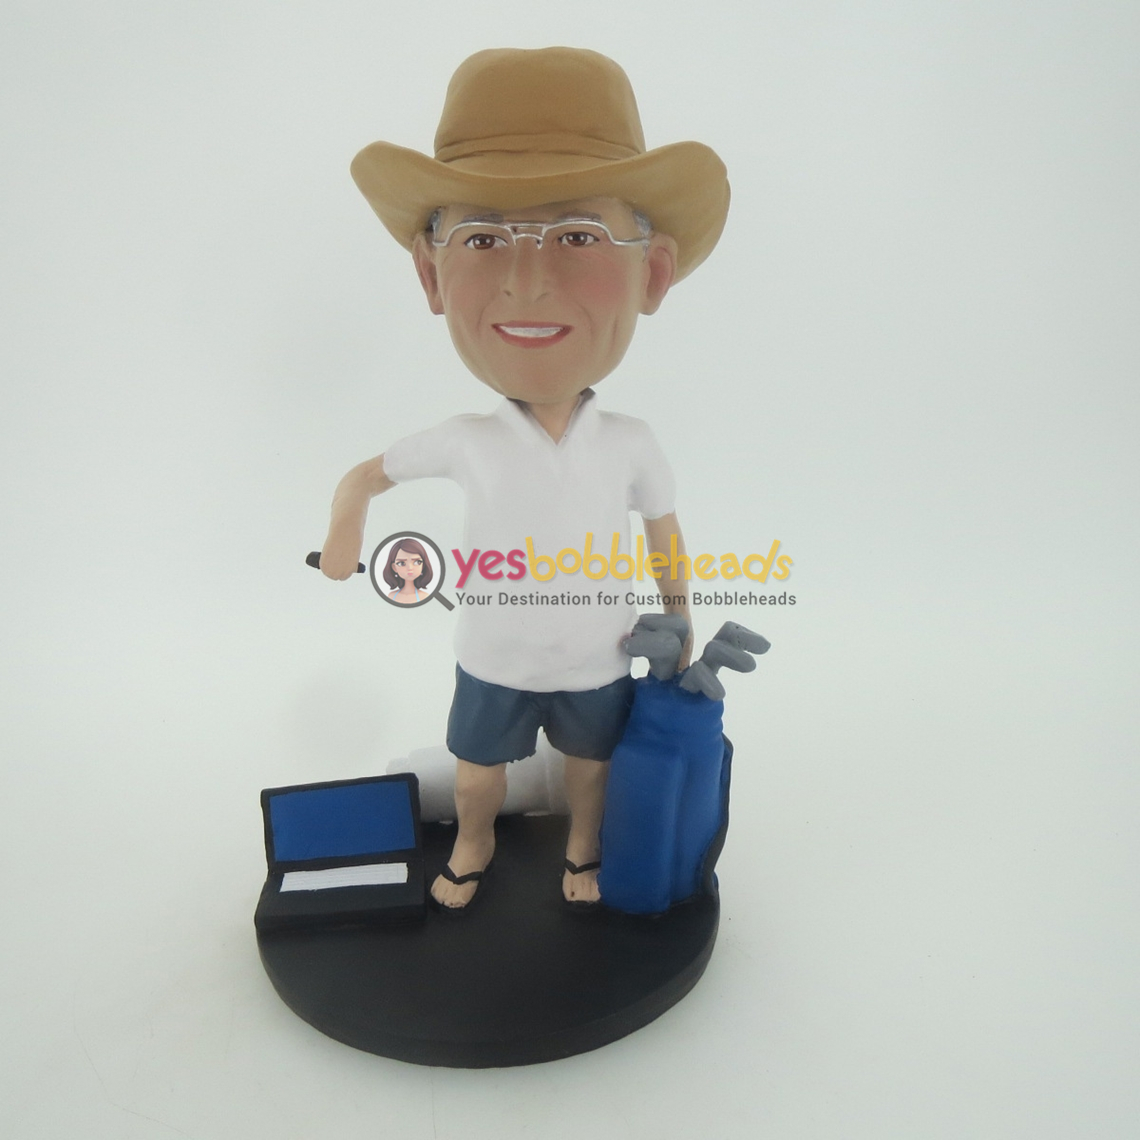 Picture of Custom Bobblehead Doll: Cowboy And Golf Club